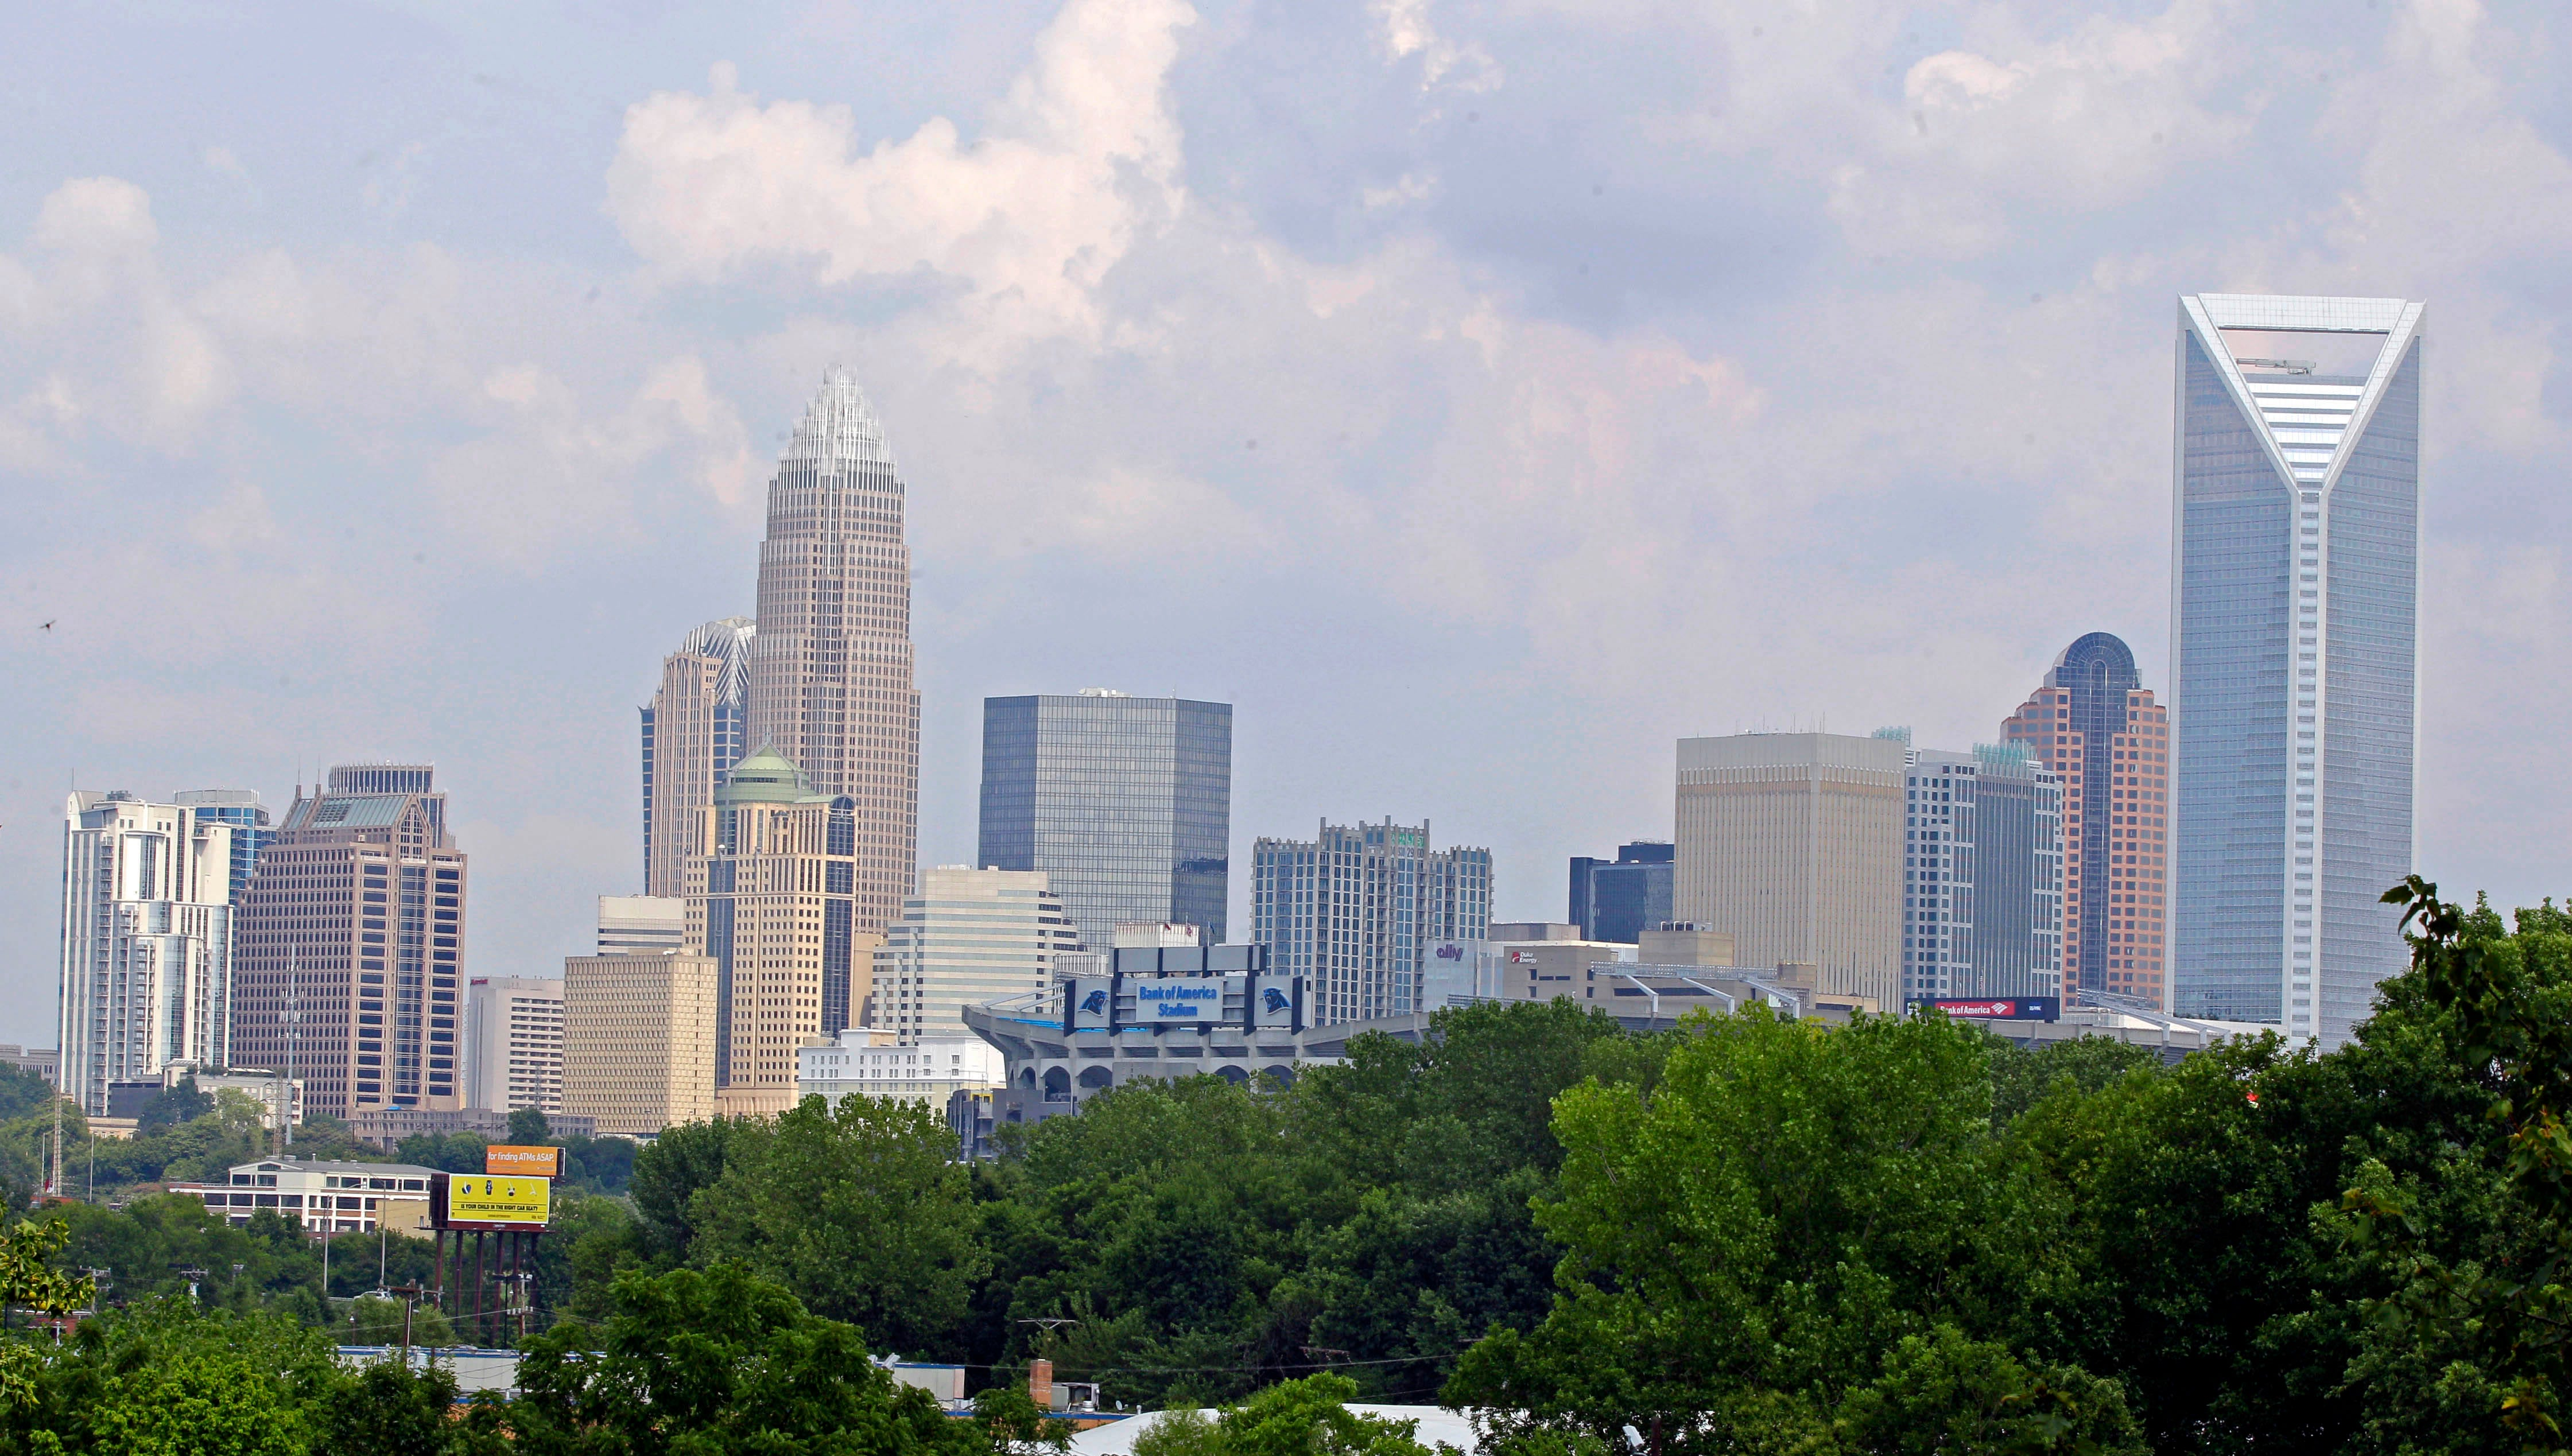 In this July 17, 2012 photo the skyline of Charlotte, N.C., is shown. Much was made about Charlotte emerging on the big stage when Democrats awarded their 2012 national convention to the city last year. But the tidy city of gleaming skyscrapers built with money during the flush years of banking is more in its middle age, trying to reinvent itself without cutting all the ties to its big cash past. (AP Photo/Chuck Burton) ORG XMIT: NCCB202